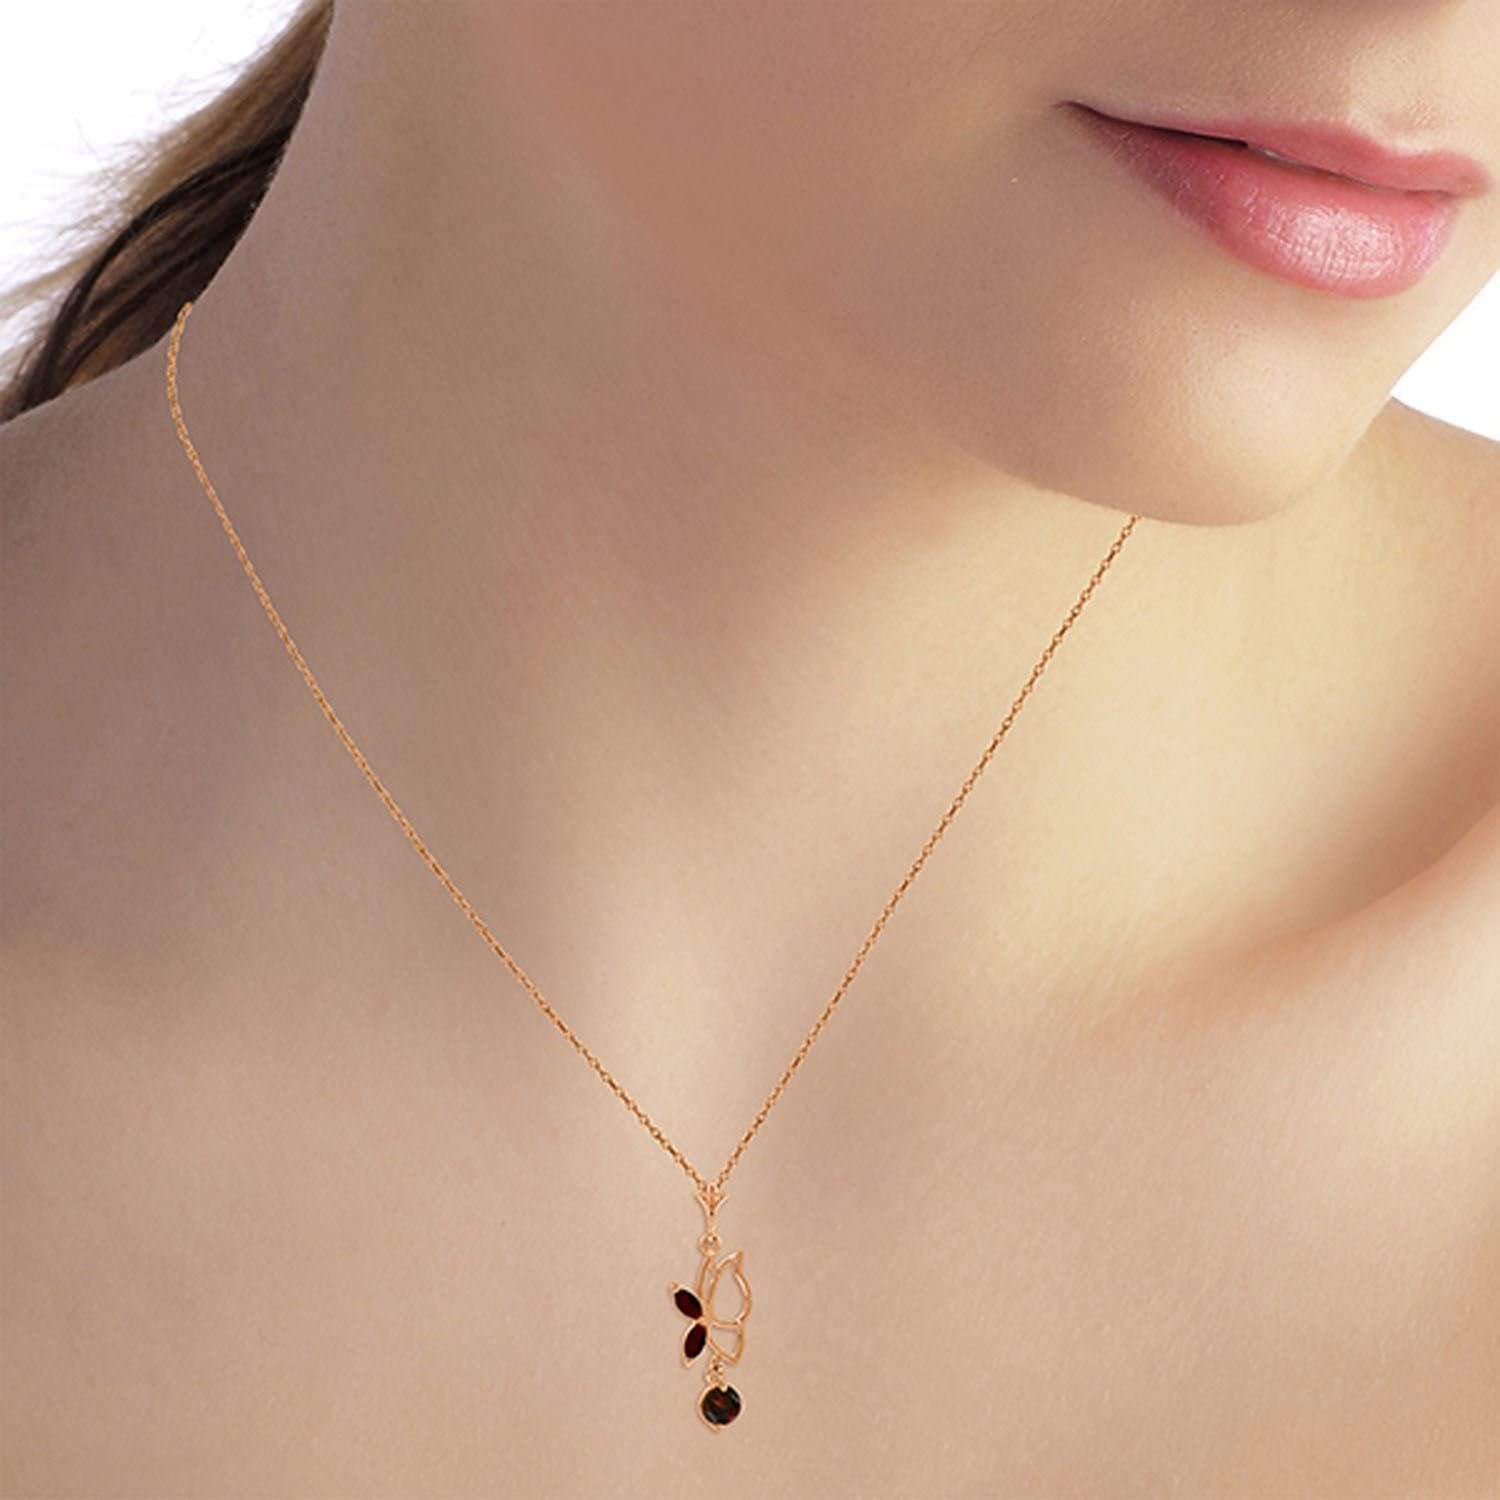 ALARRI 14K Solid Rose Gold Butterfly Necklace w// Garnets with 22 Inch Chain Length